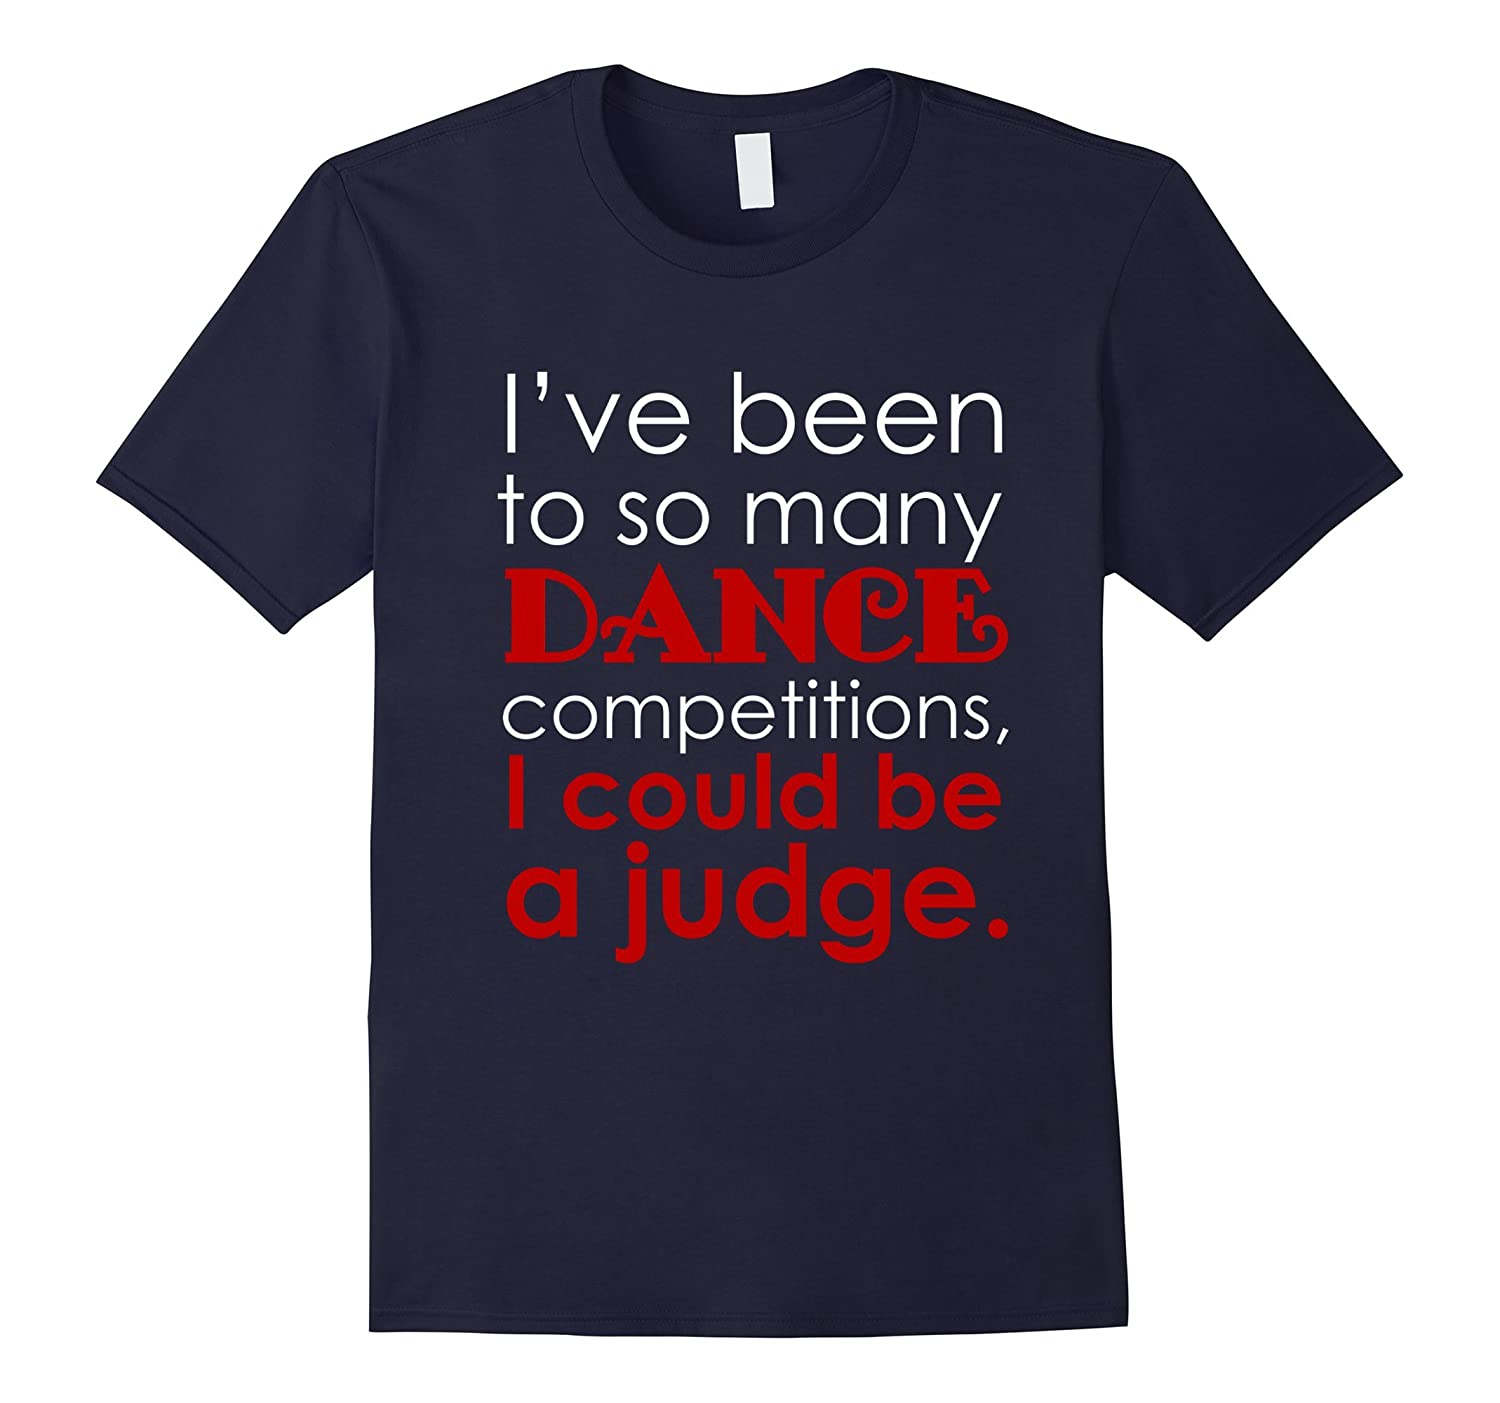 I Could Be A Judge-Funny T-shirt for Dance Competitions-Vaci